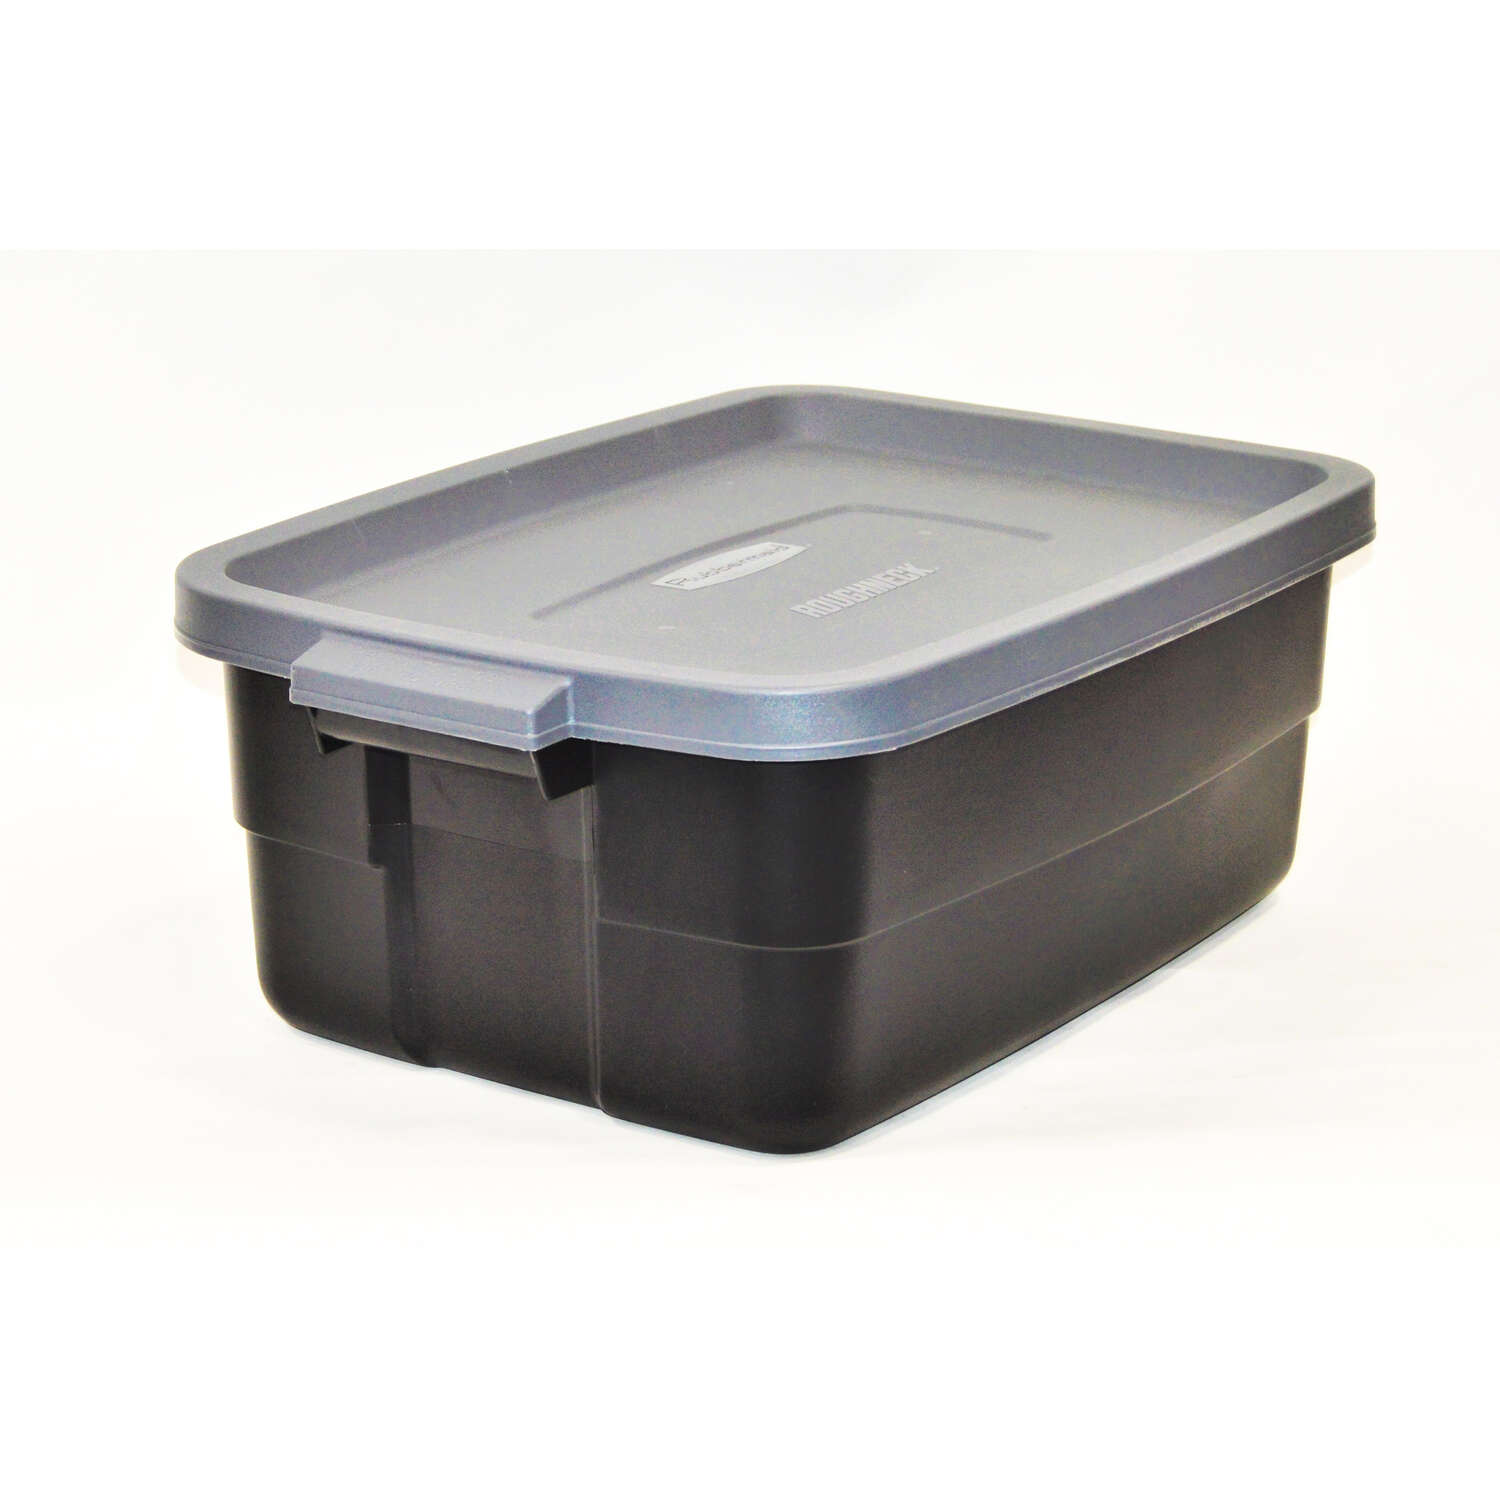 Rubbermaid Roughneck 87 in H x 23875 in D x 159 in W Stackable